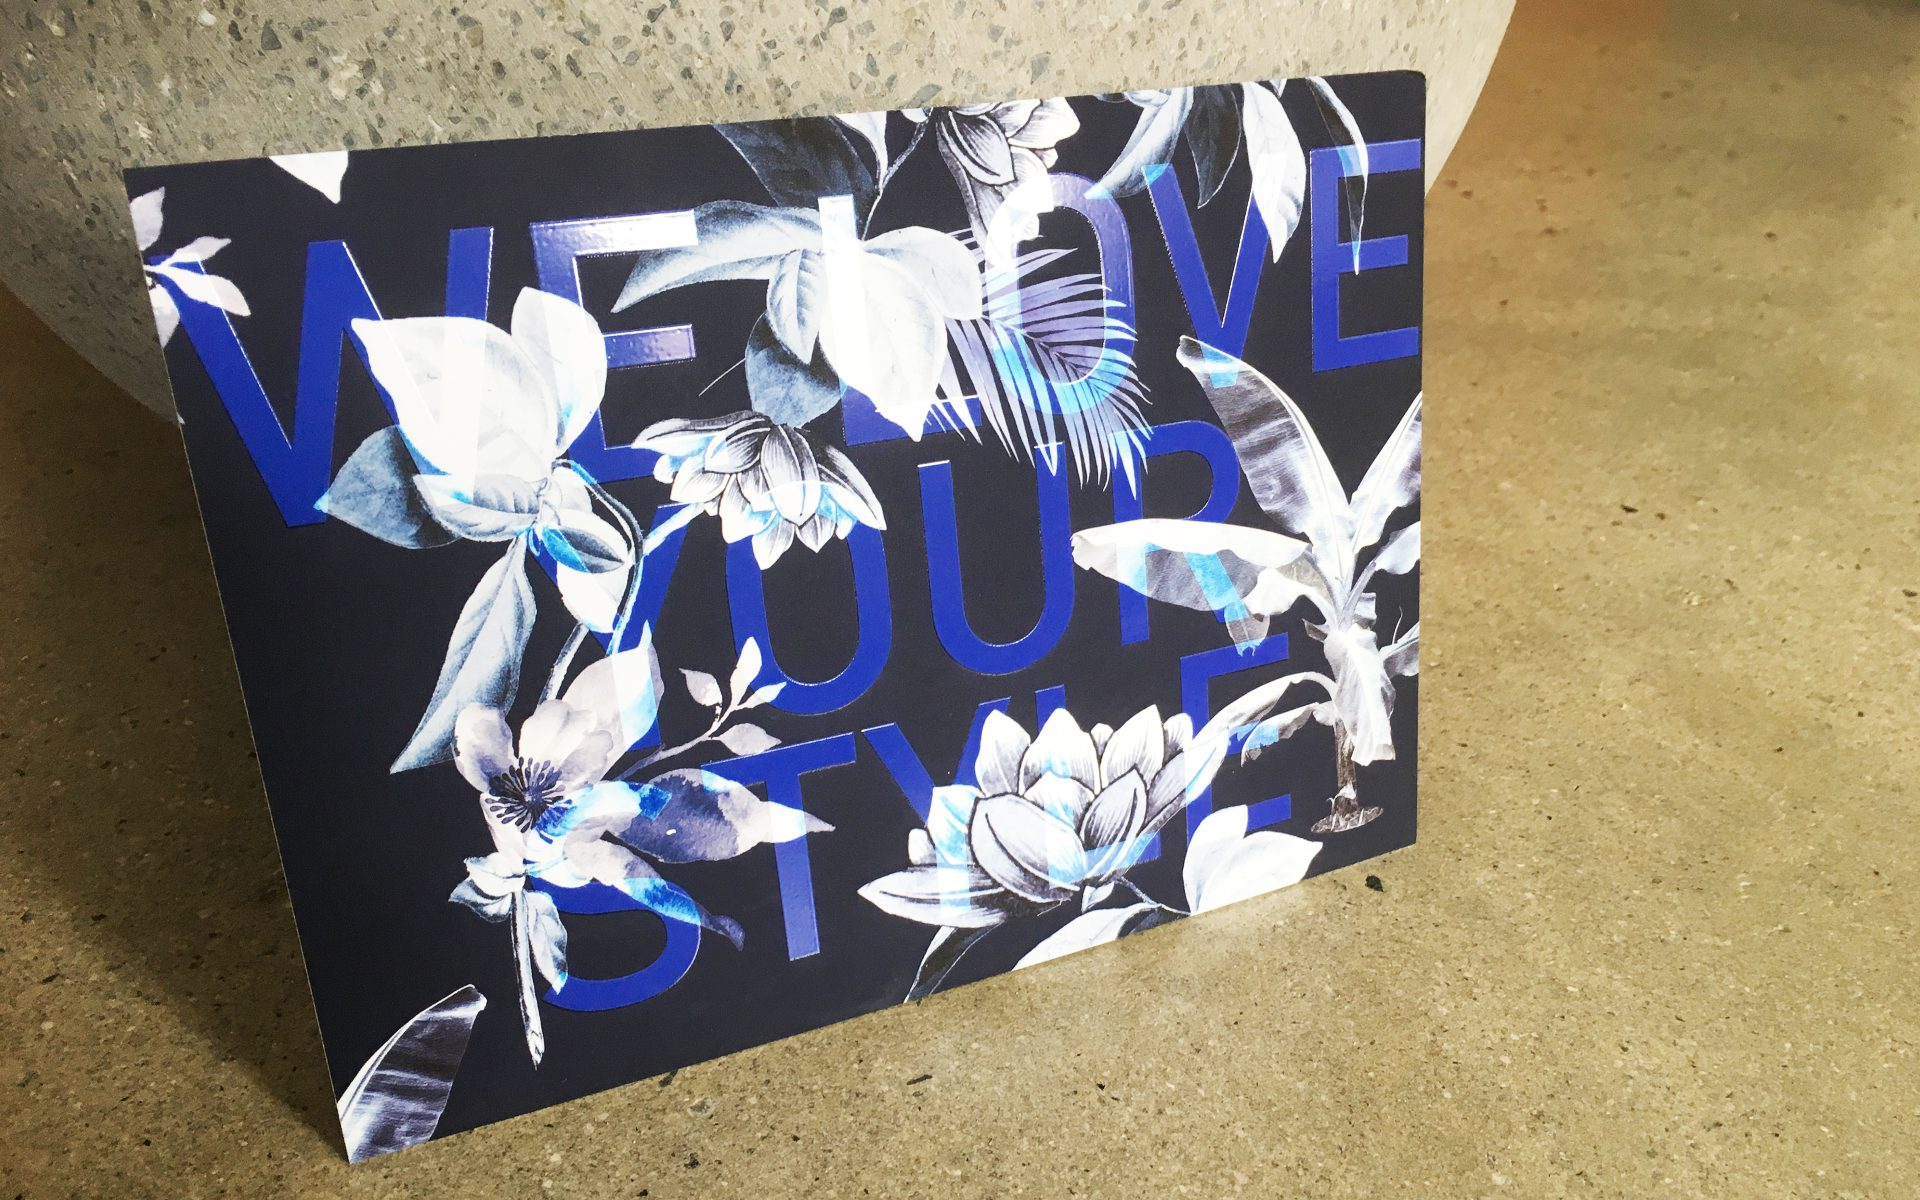 Alulu brand thank you cards floral print and blue spot UV